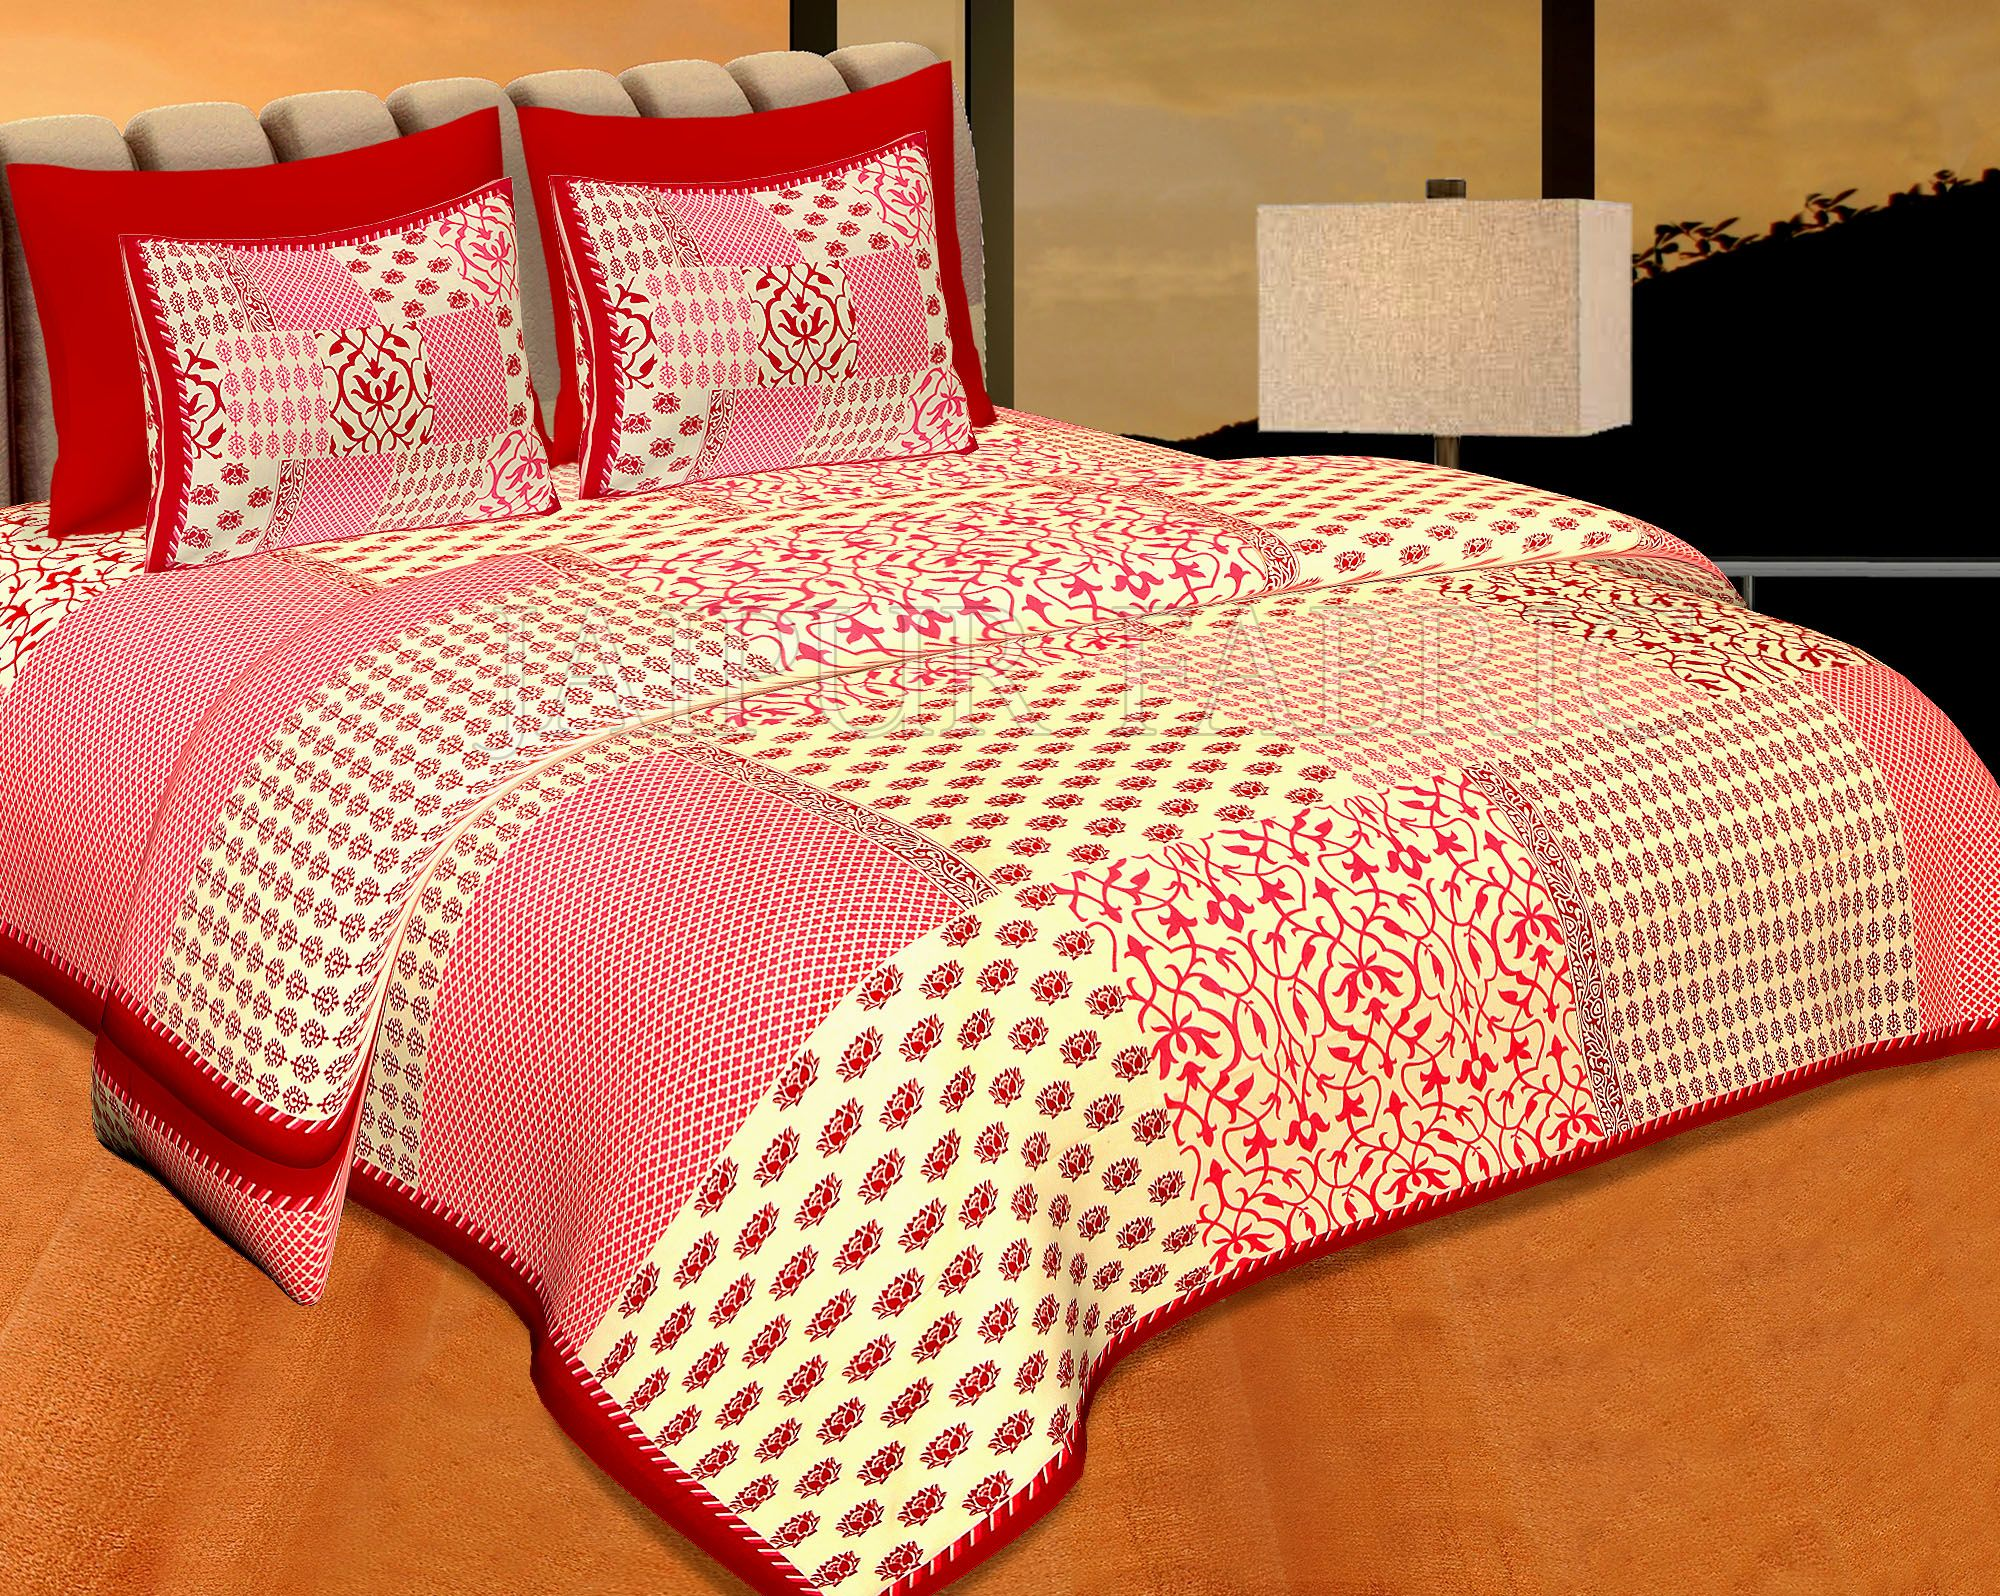 Mahroon Border With Small Lotus Rangoli And Check Print Designer Pattern Fine Coton Poplin Double Bedsheet With Two Pillow Cover